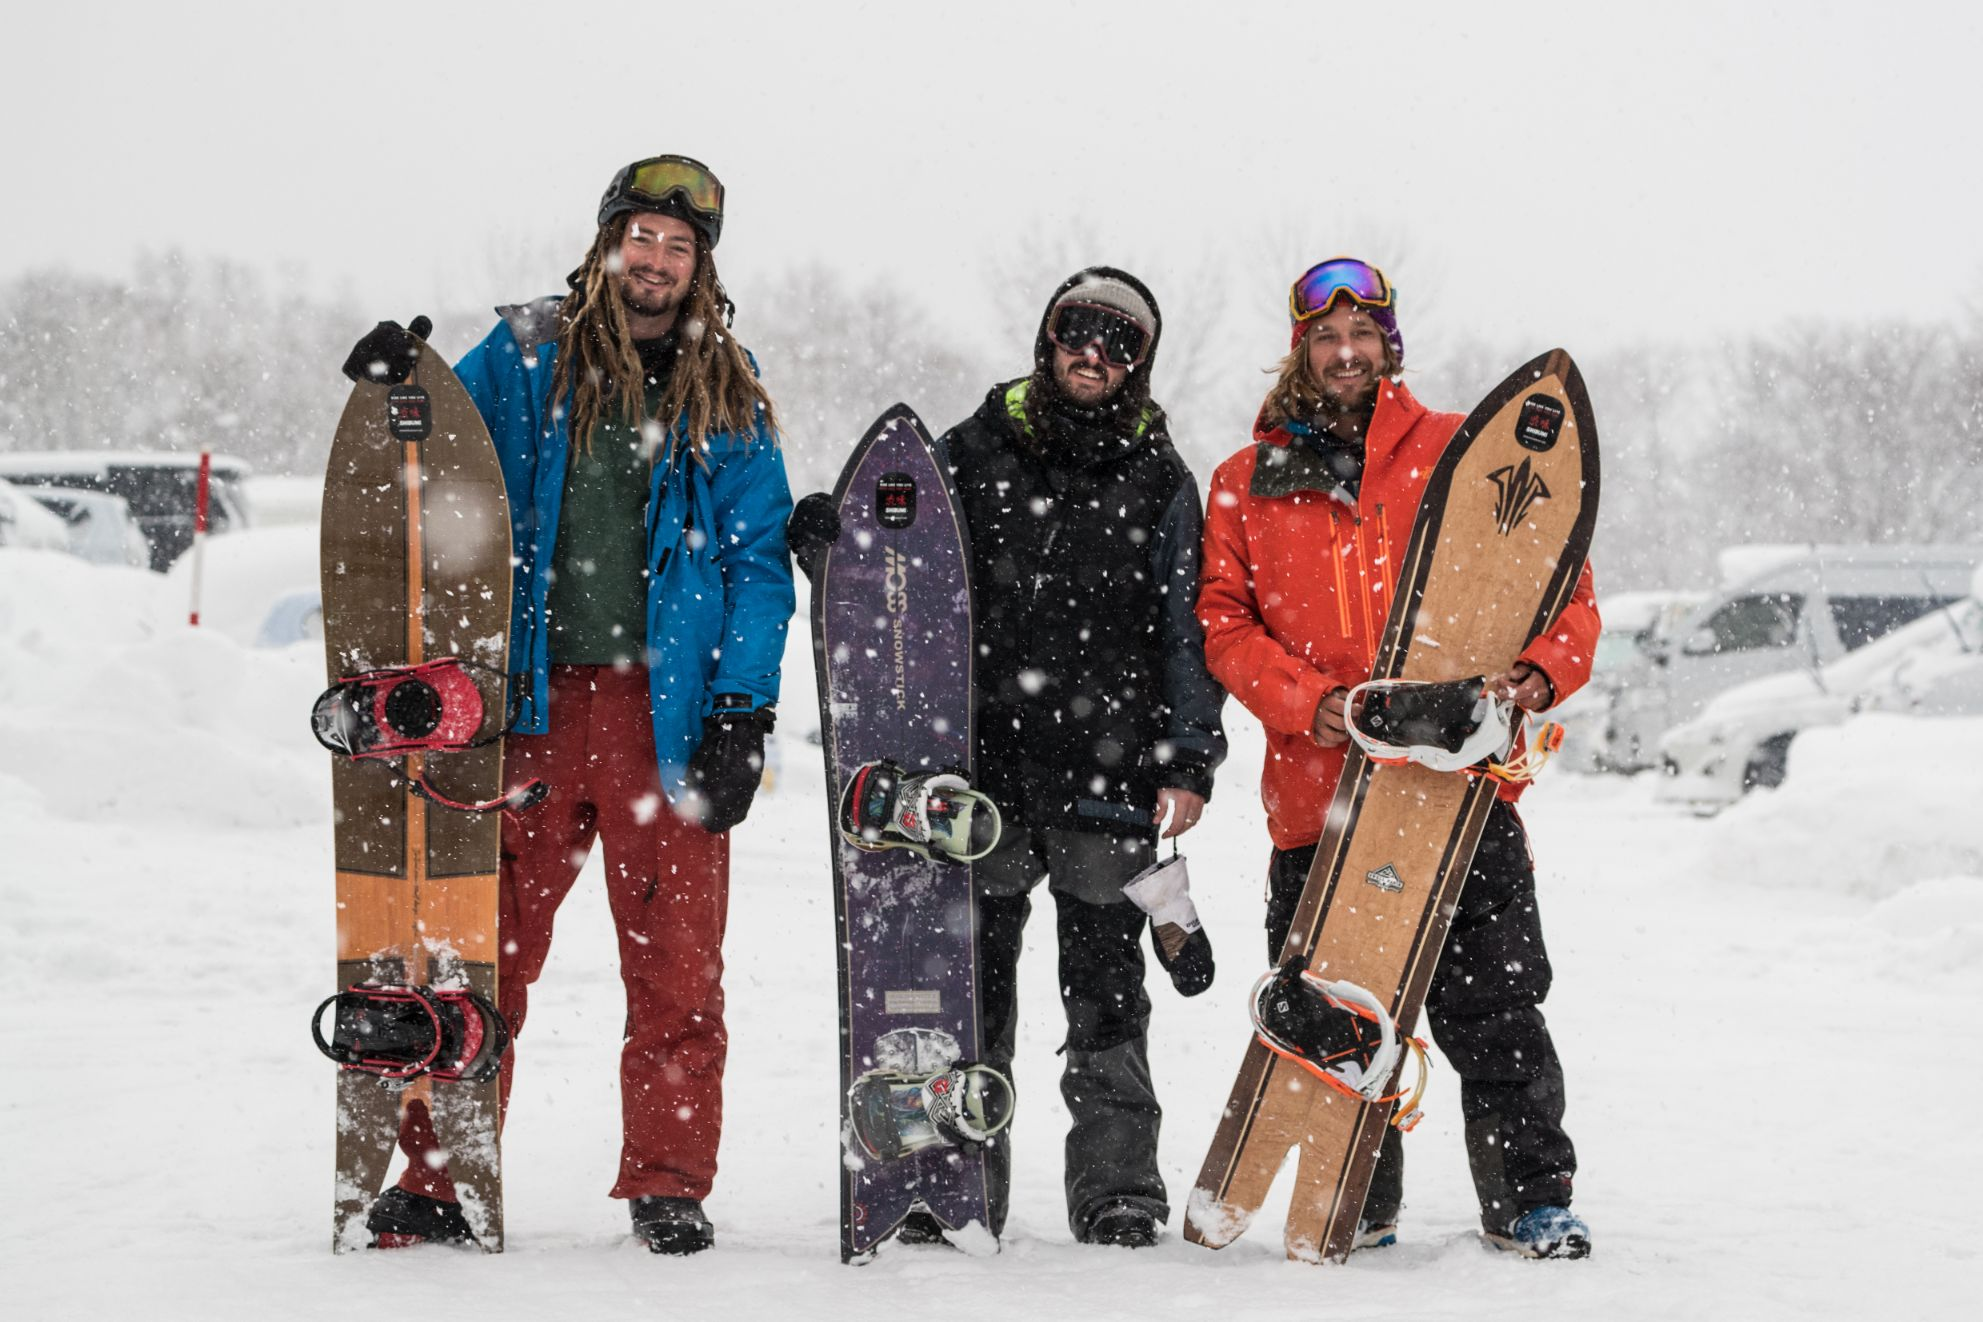 Three snowboarders stand together holding their boards.